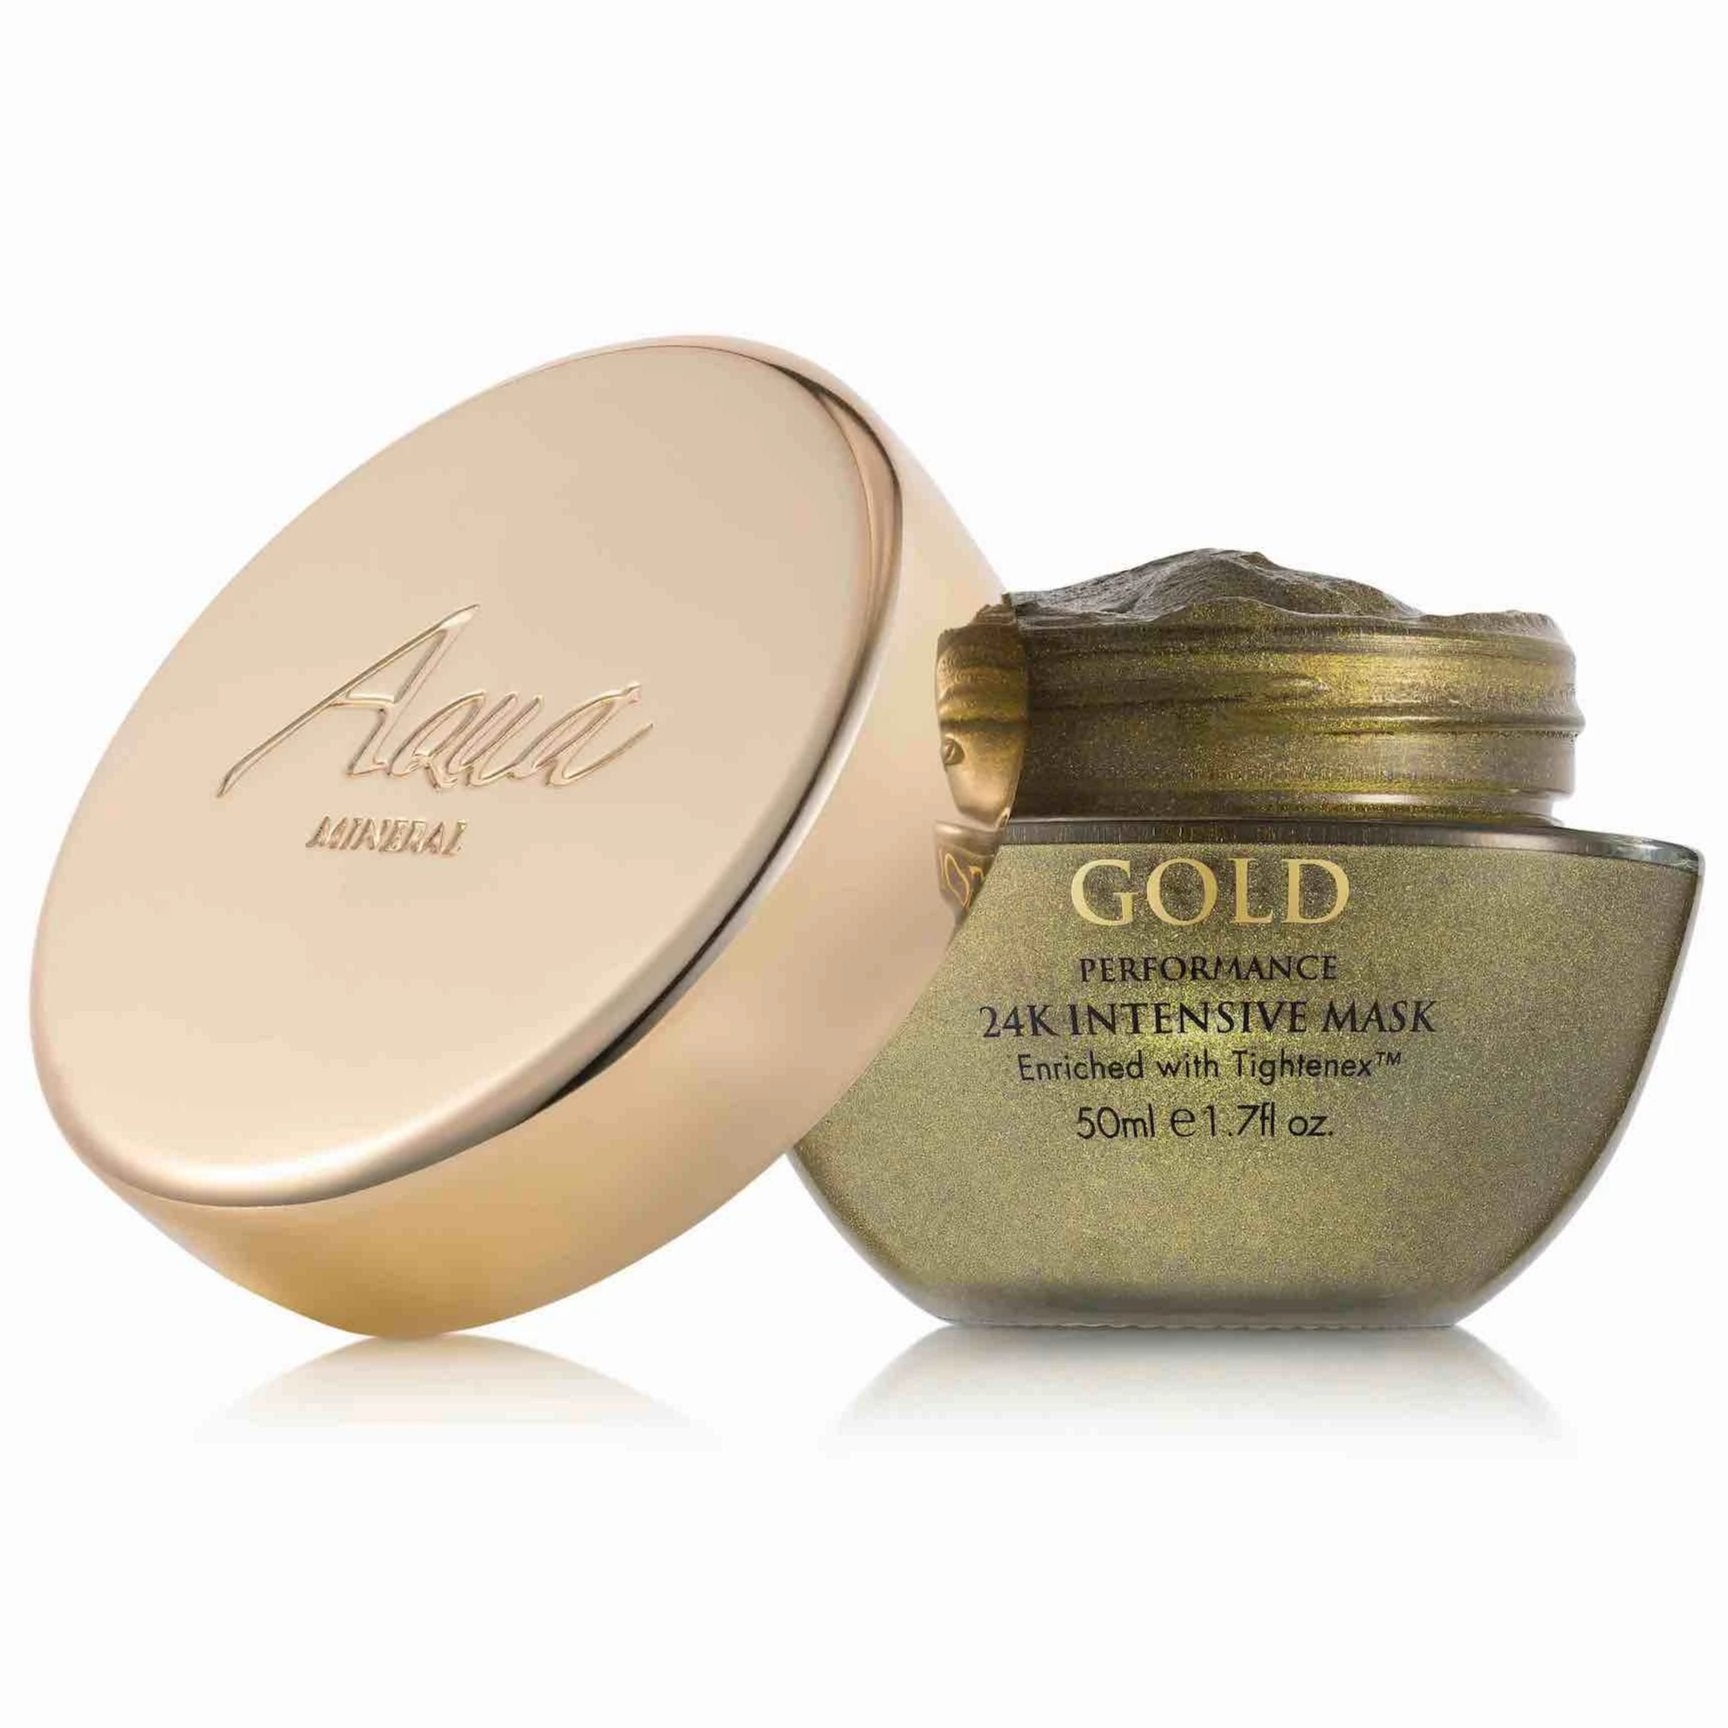 Gold Performance 24 K Intensive Mask Aqua Mineral